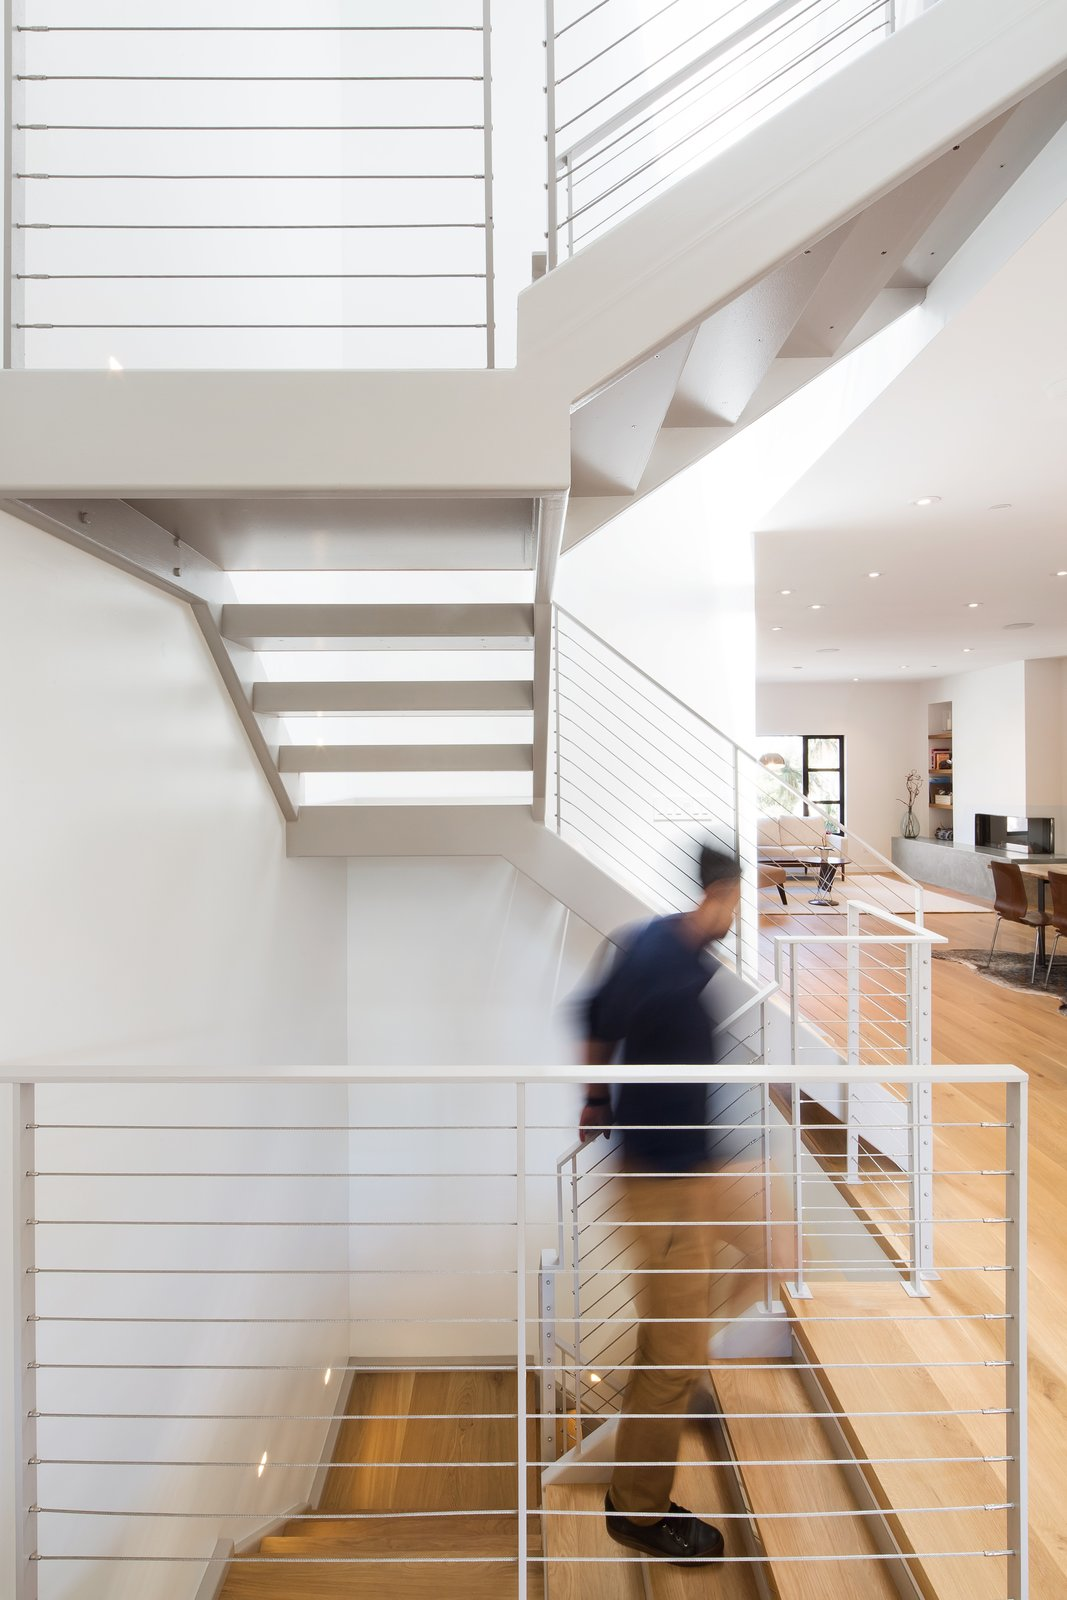 Staircase, Metal Tread, and Metal Railing Main stair  27th Street - Noe Valley by patrick perez/designpad architecture